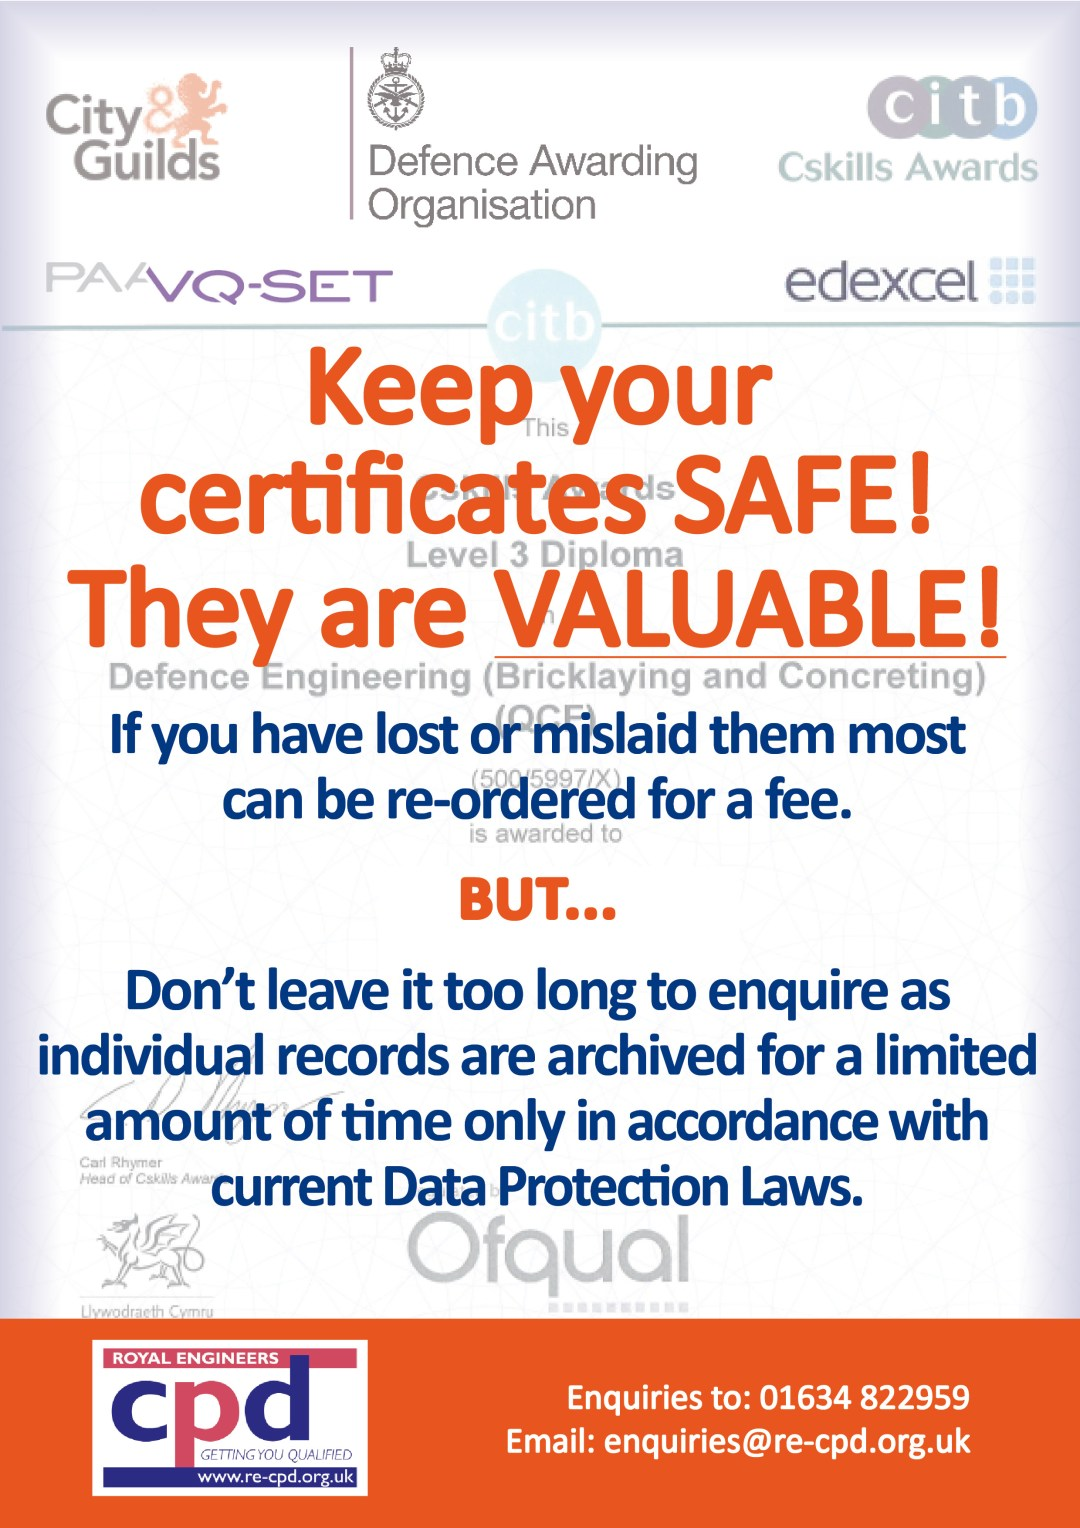 Your Certificates Are Valuable!